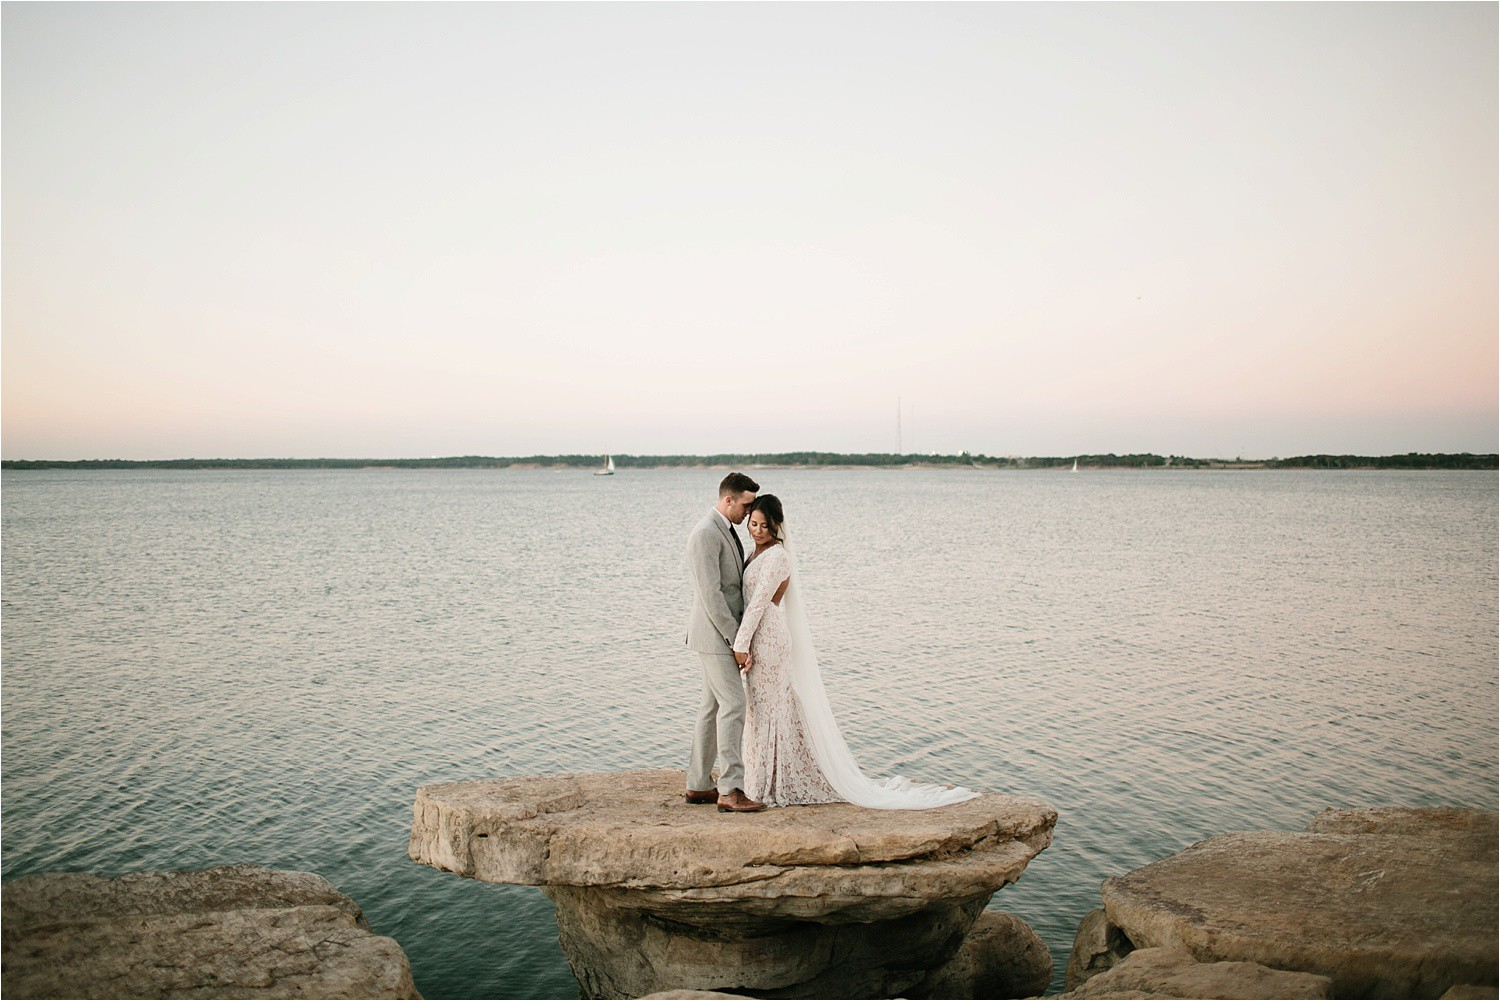 mallory-tyler-__-an-intimate-after-session-at-grapevine-lake-by-north-texas-wedding-photographer-rachel-meagan-photography-_-47